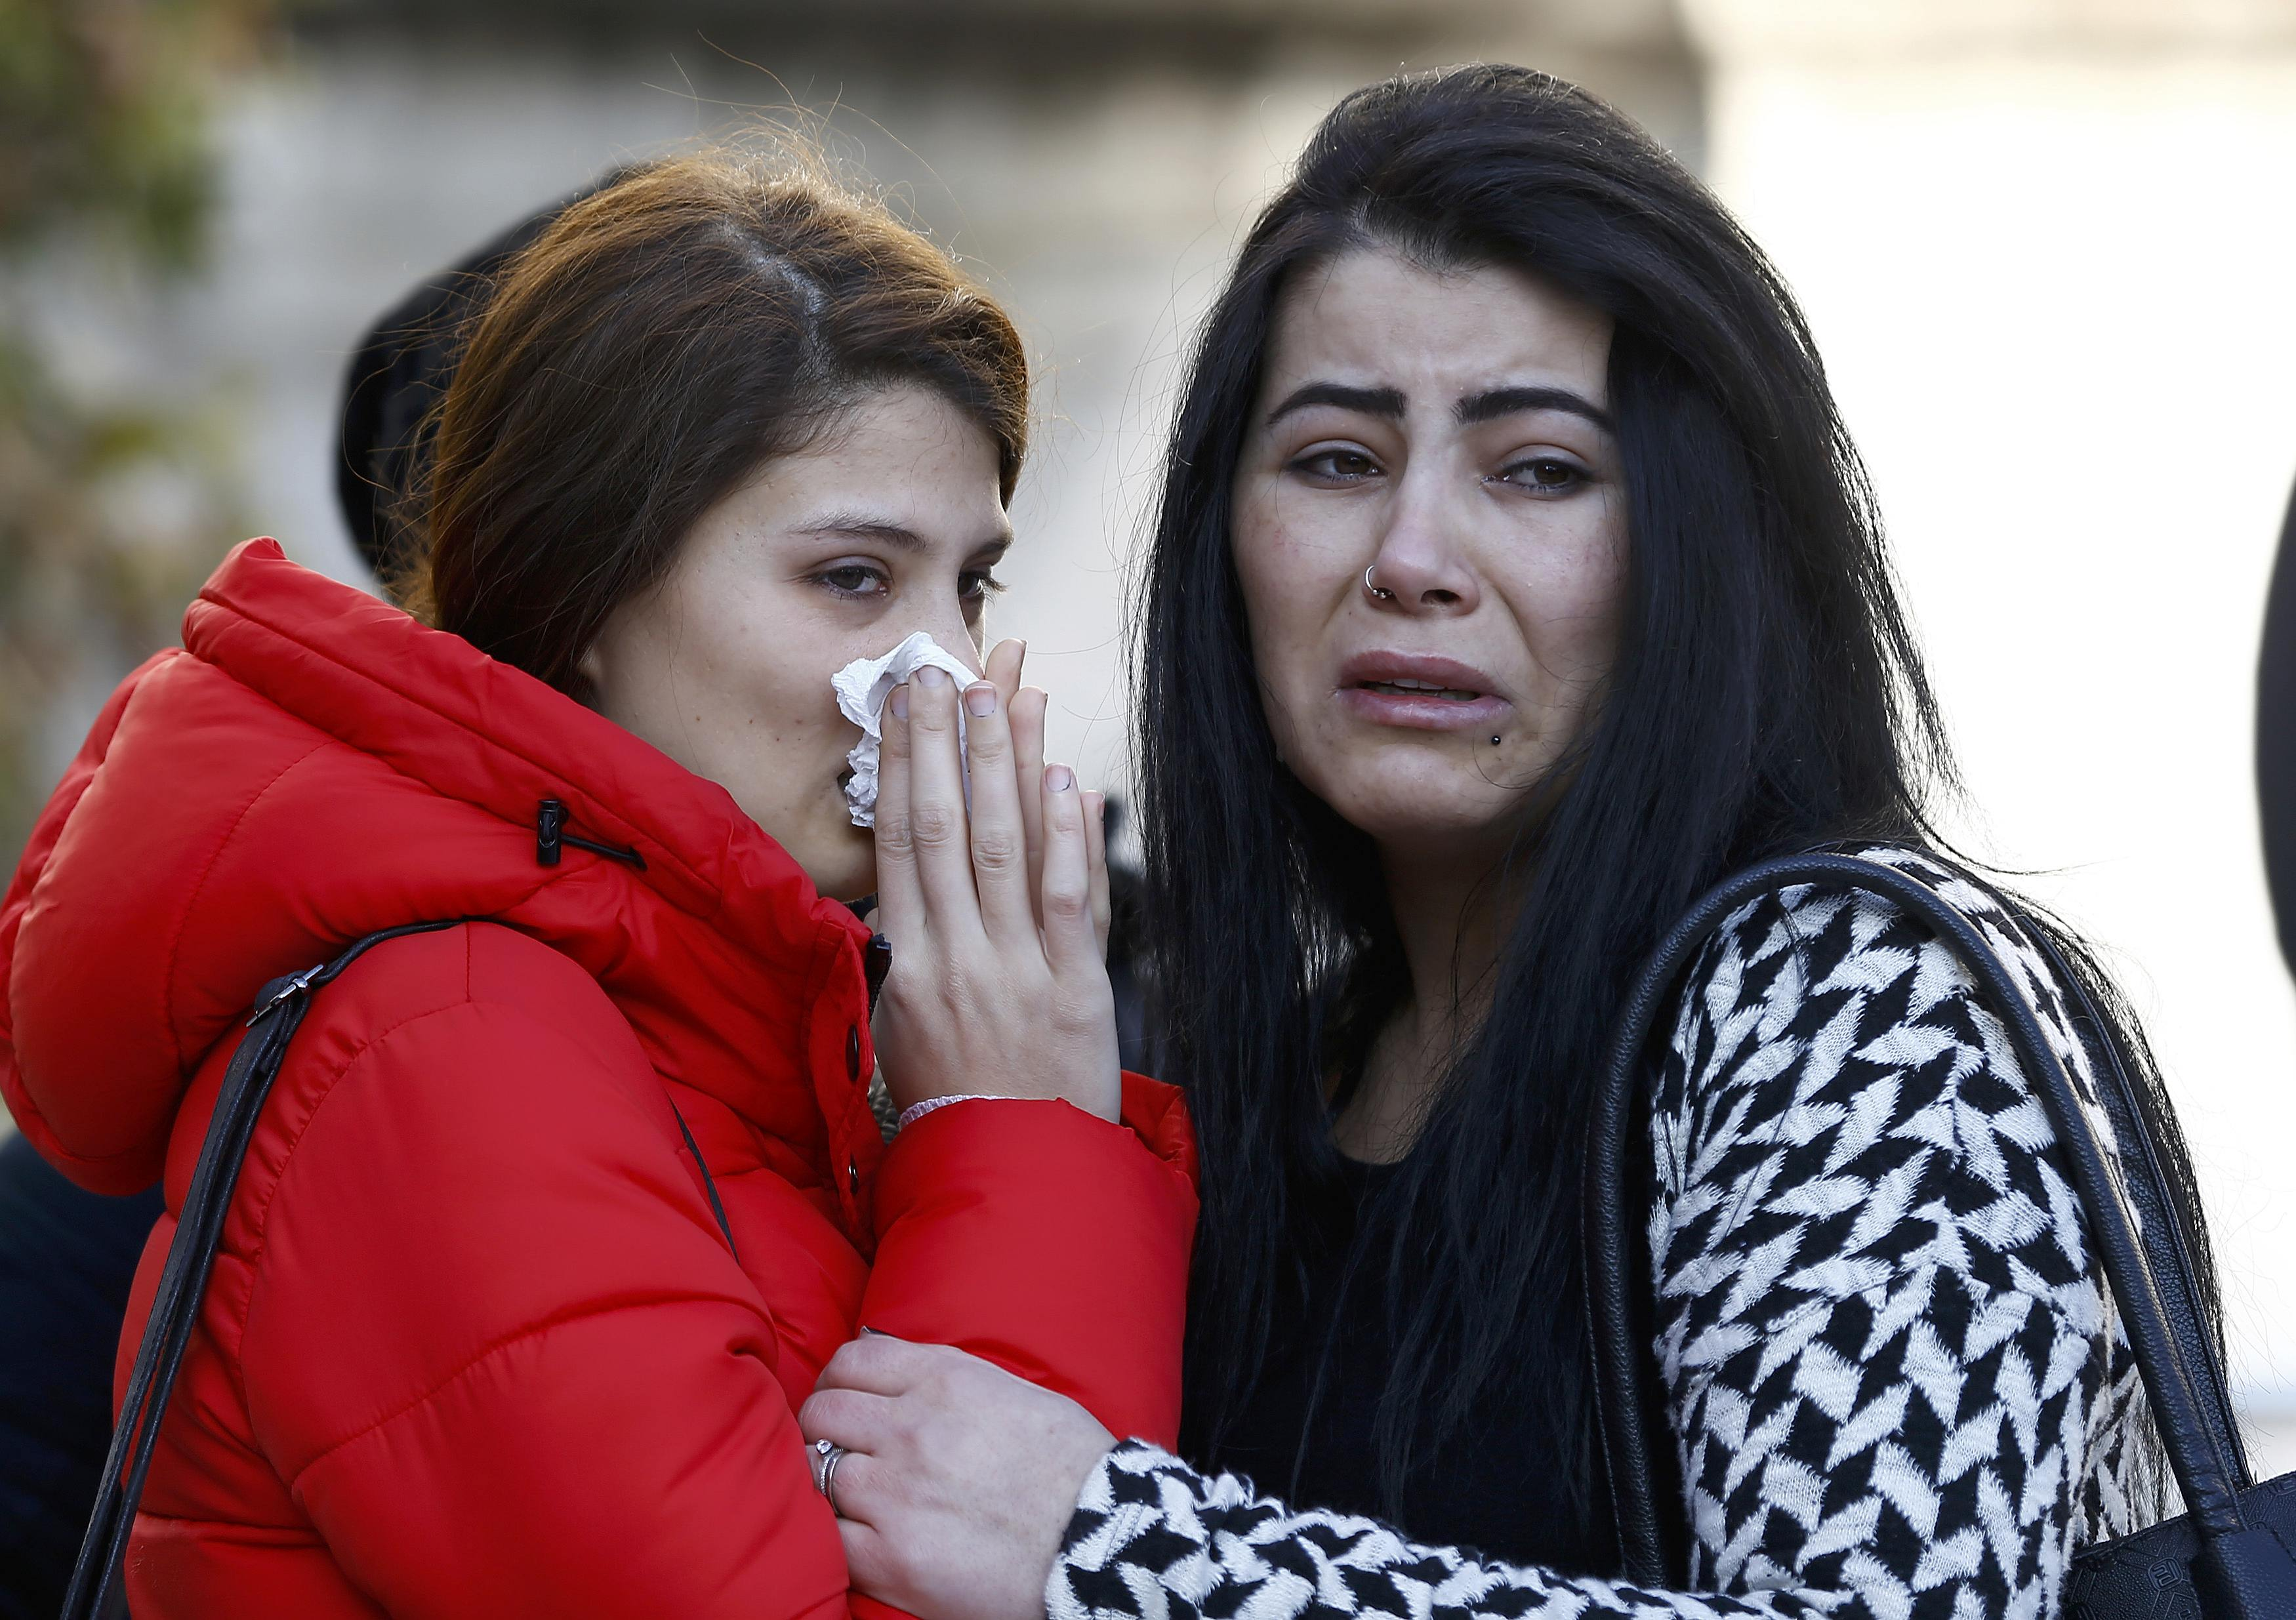 IS claims Istanbul attack, gunman remains at large